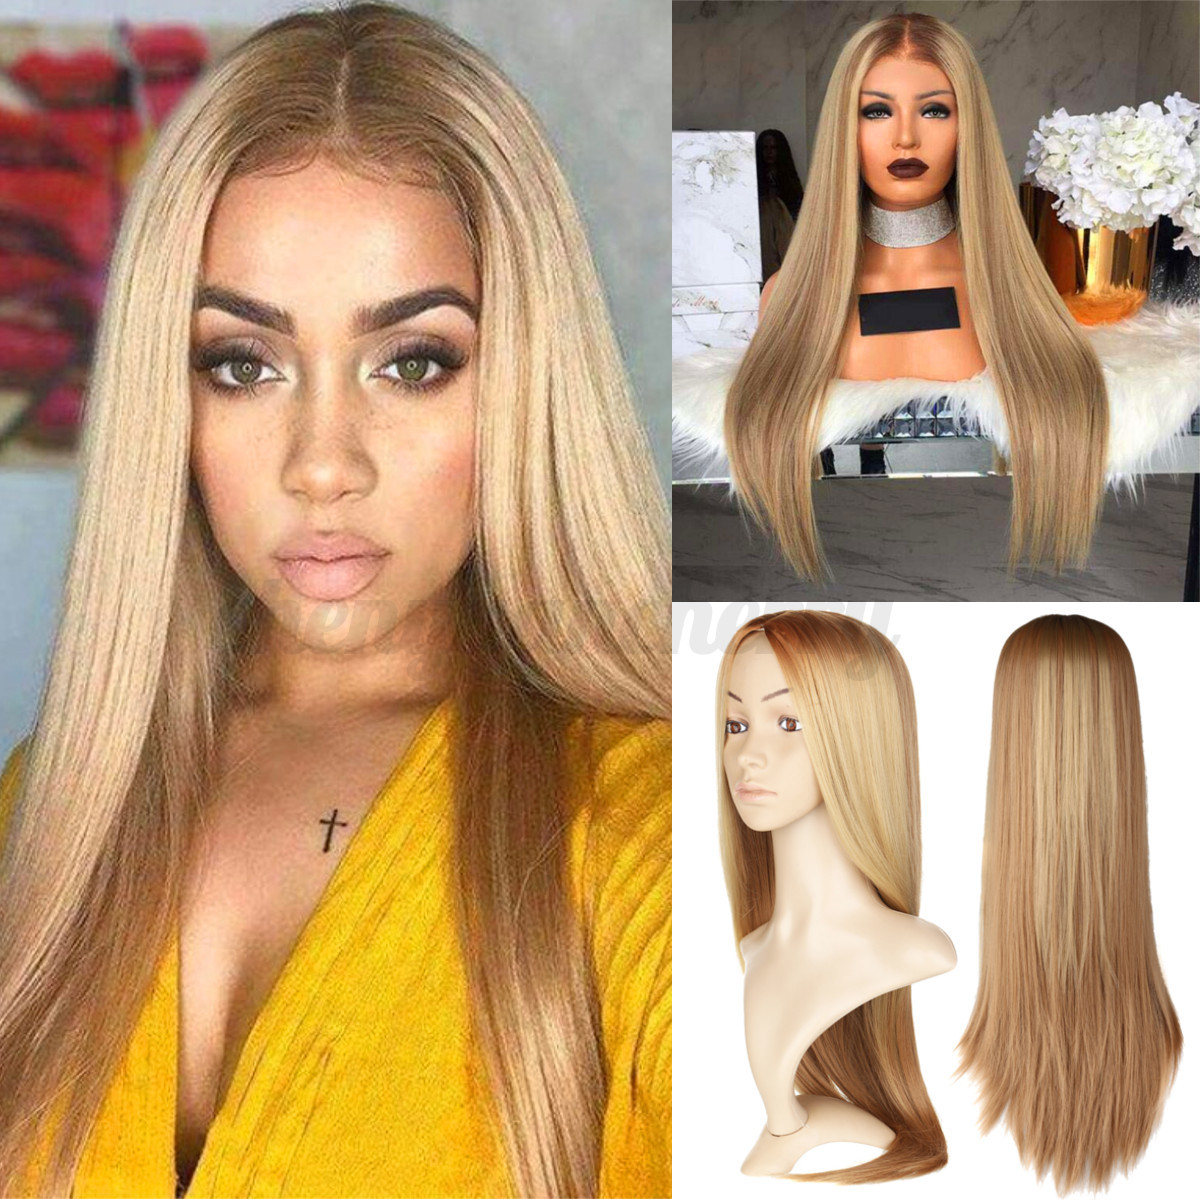 Womens-Long-Wavy-Straight-Curly-Hair-Synthetic-Cosplay-Full-Wig-Wigs-Party-70cm thumbnail 13